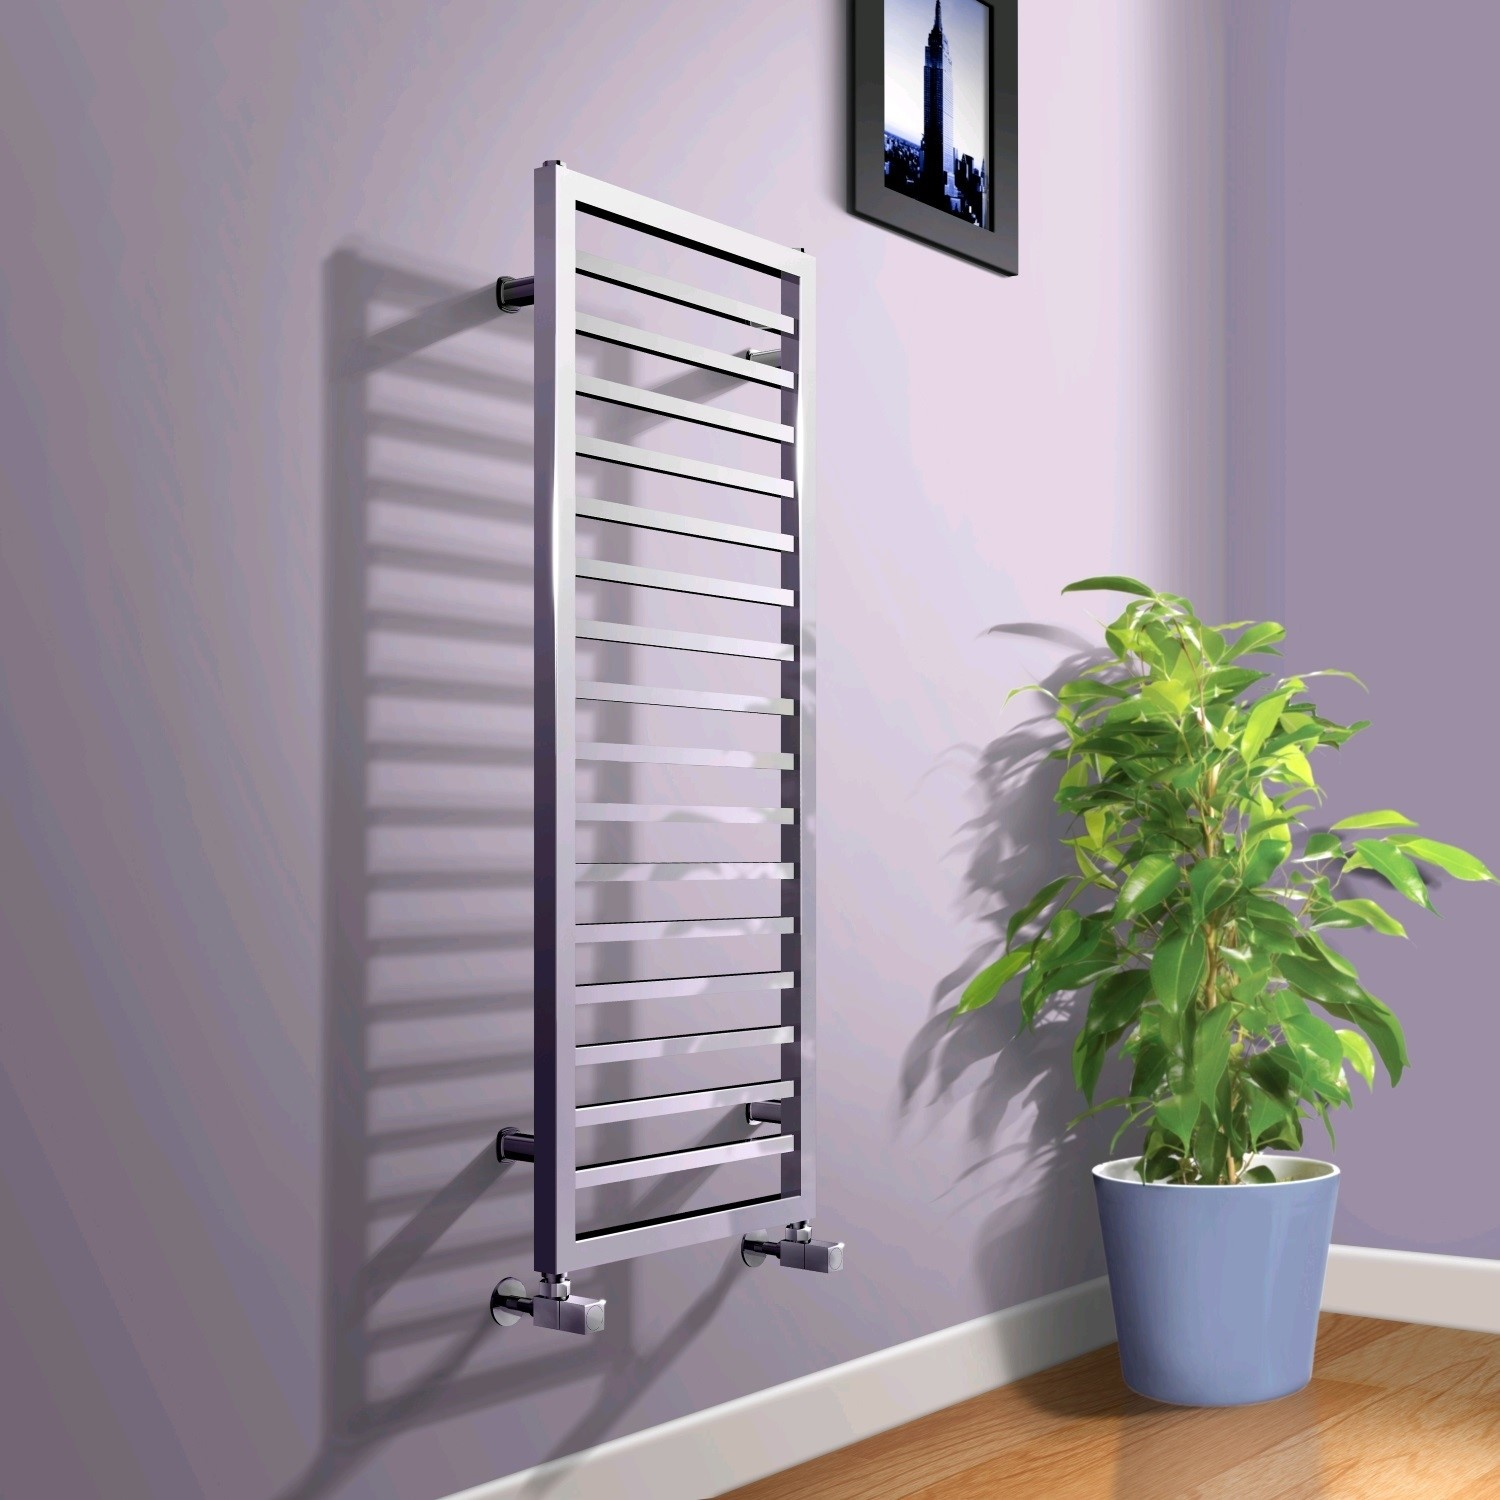 1150 x 450mm Square Chrome Heated Towel Rail  Julian Range